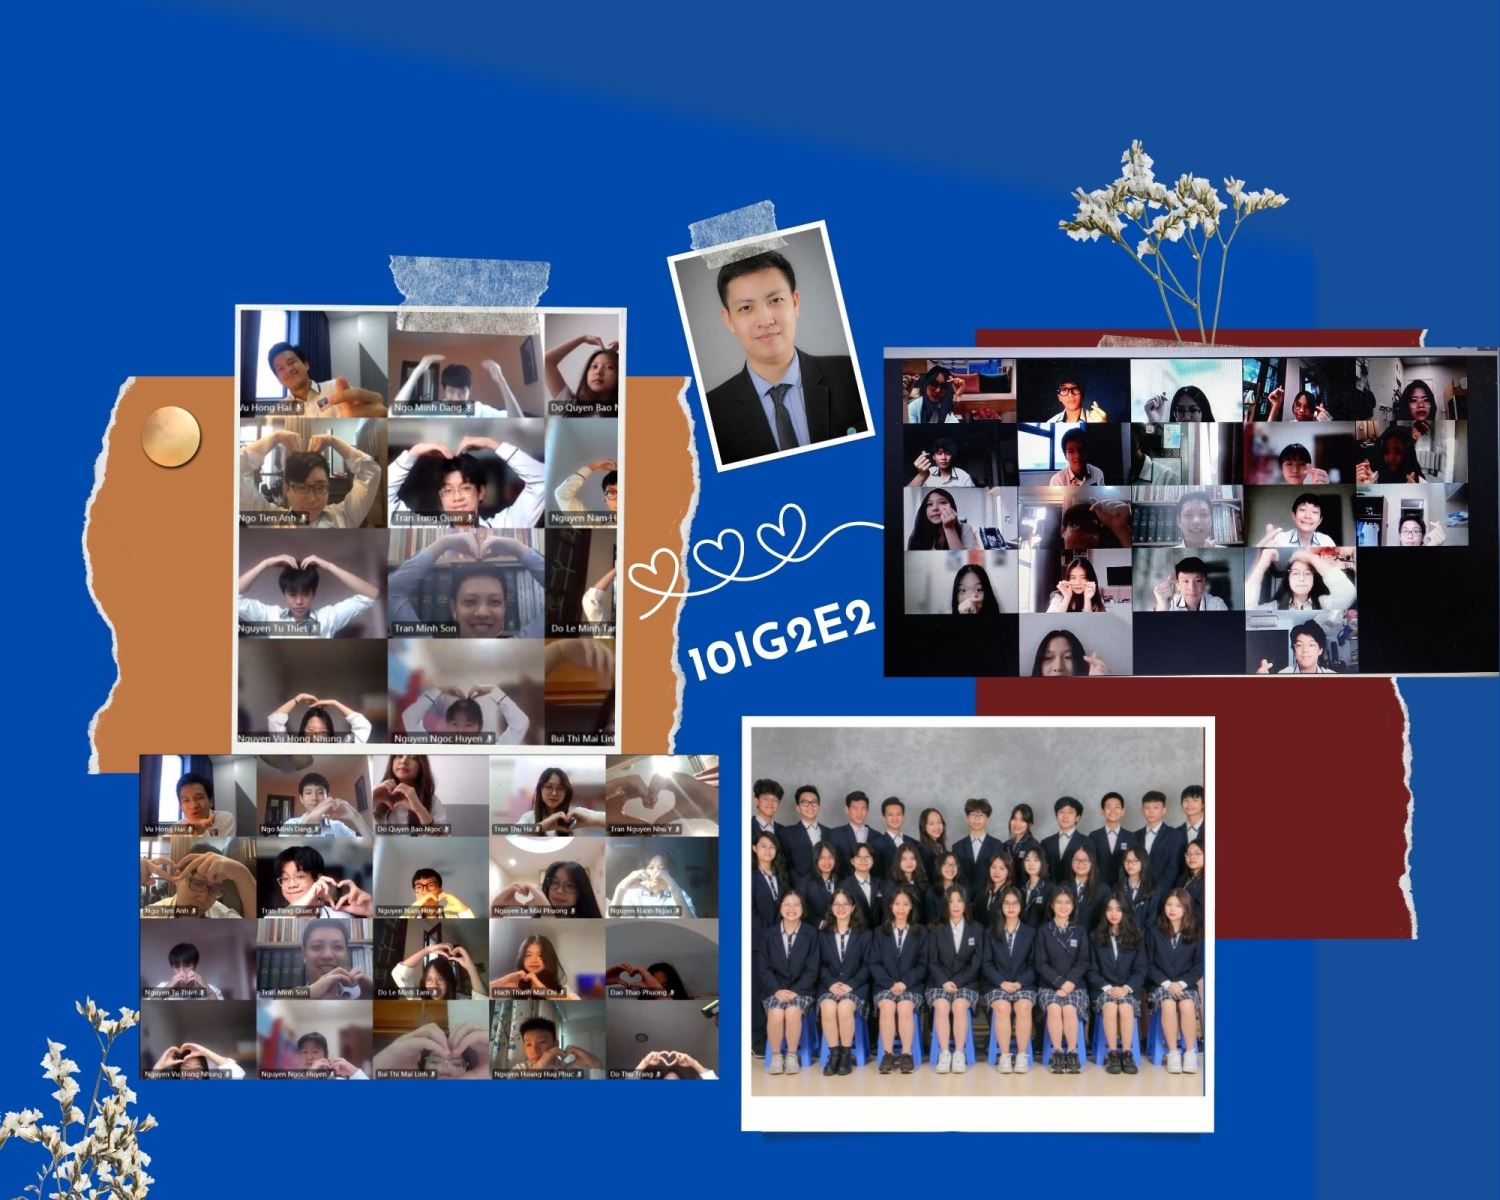 10IG2E2, WE ARE ONE!